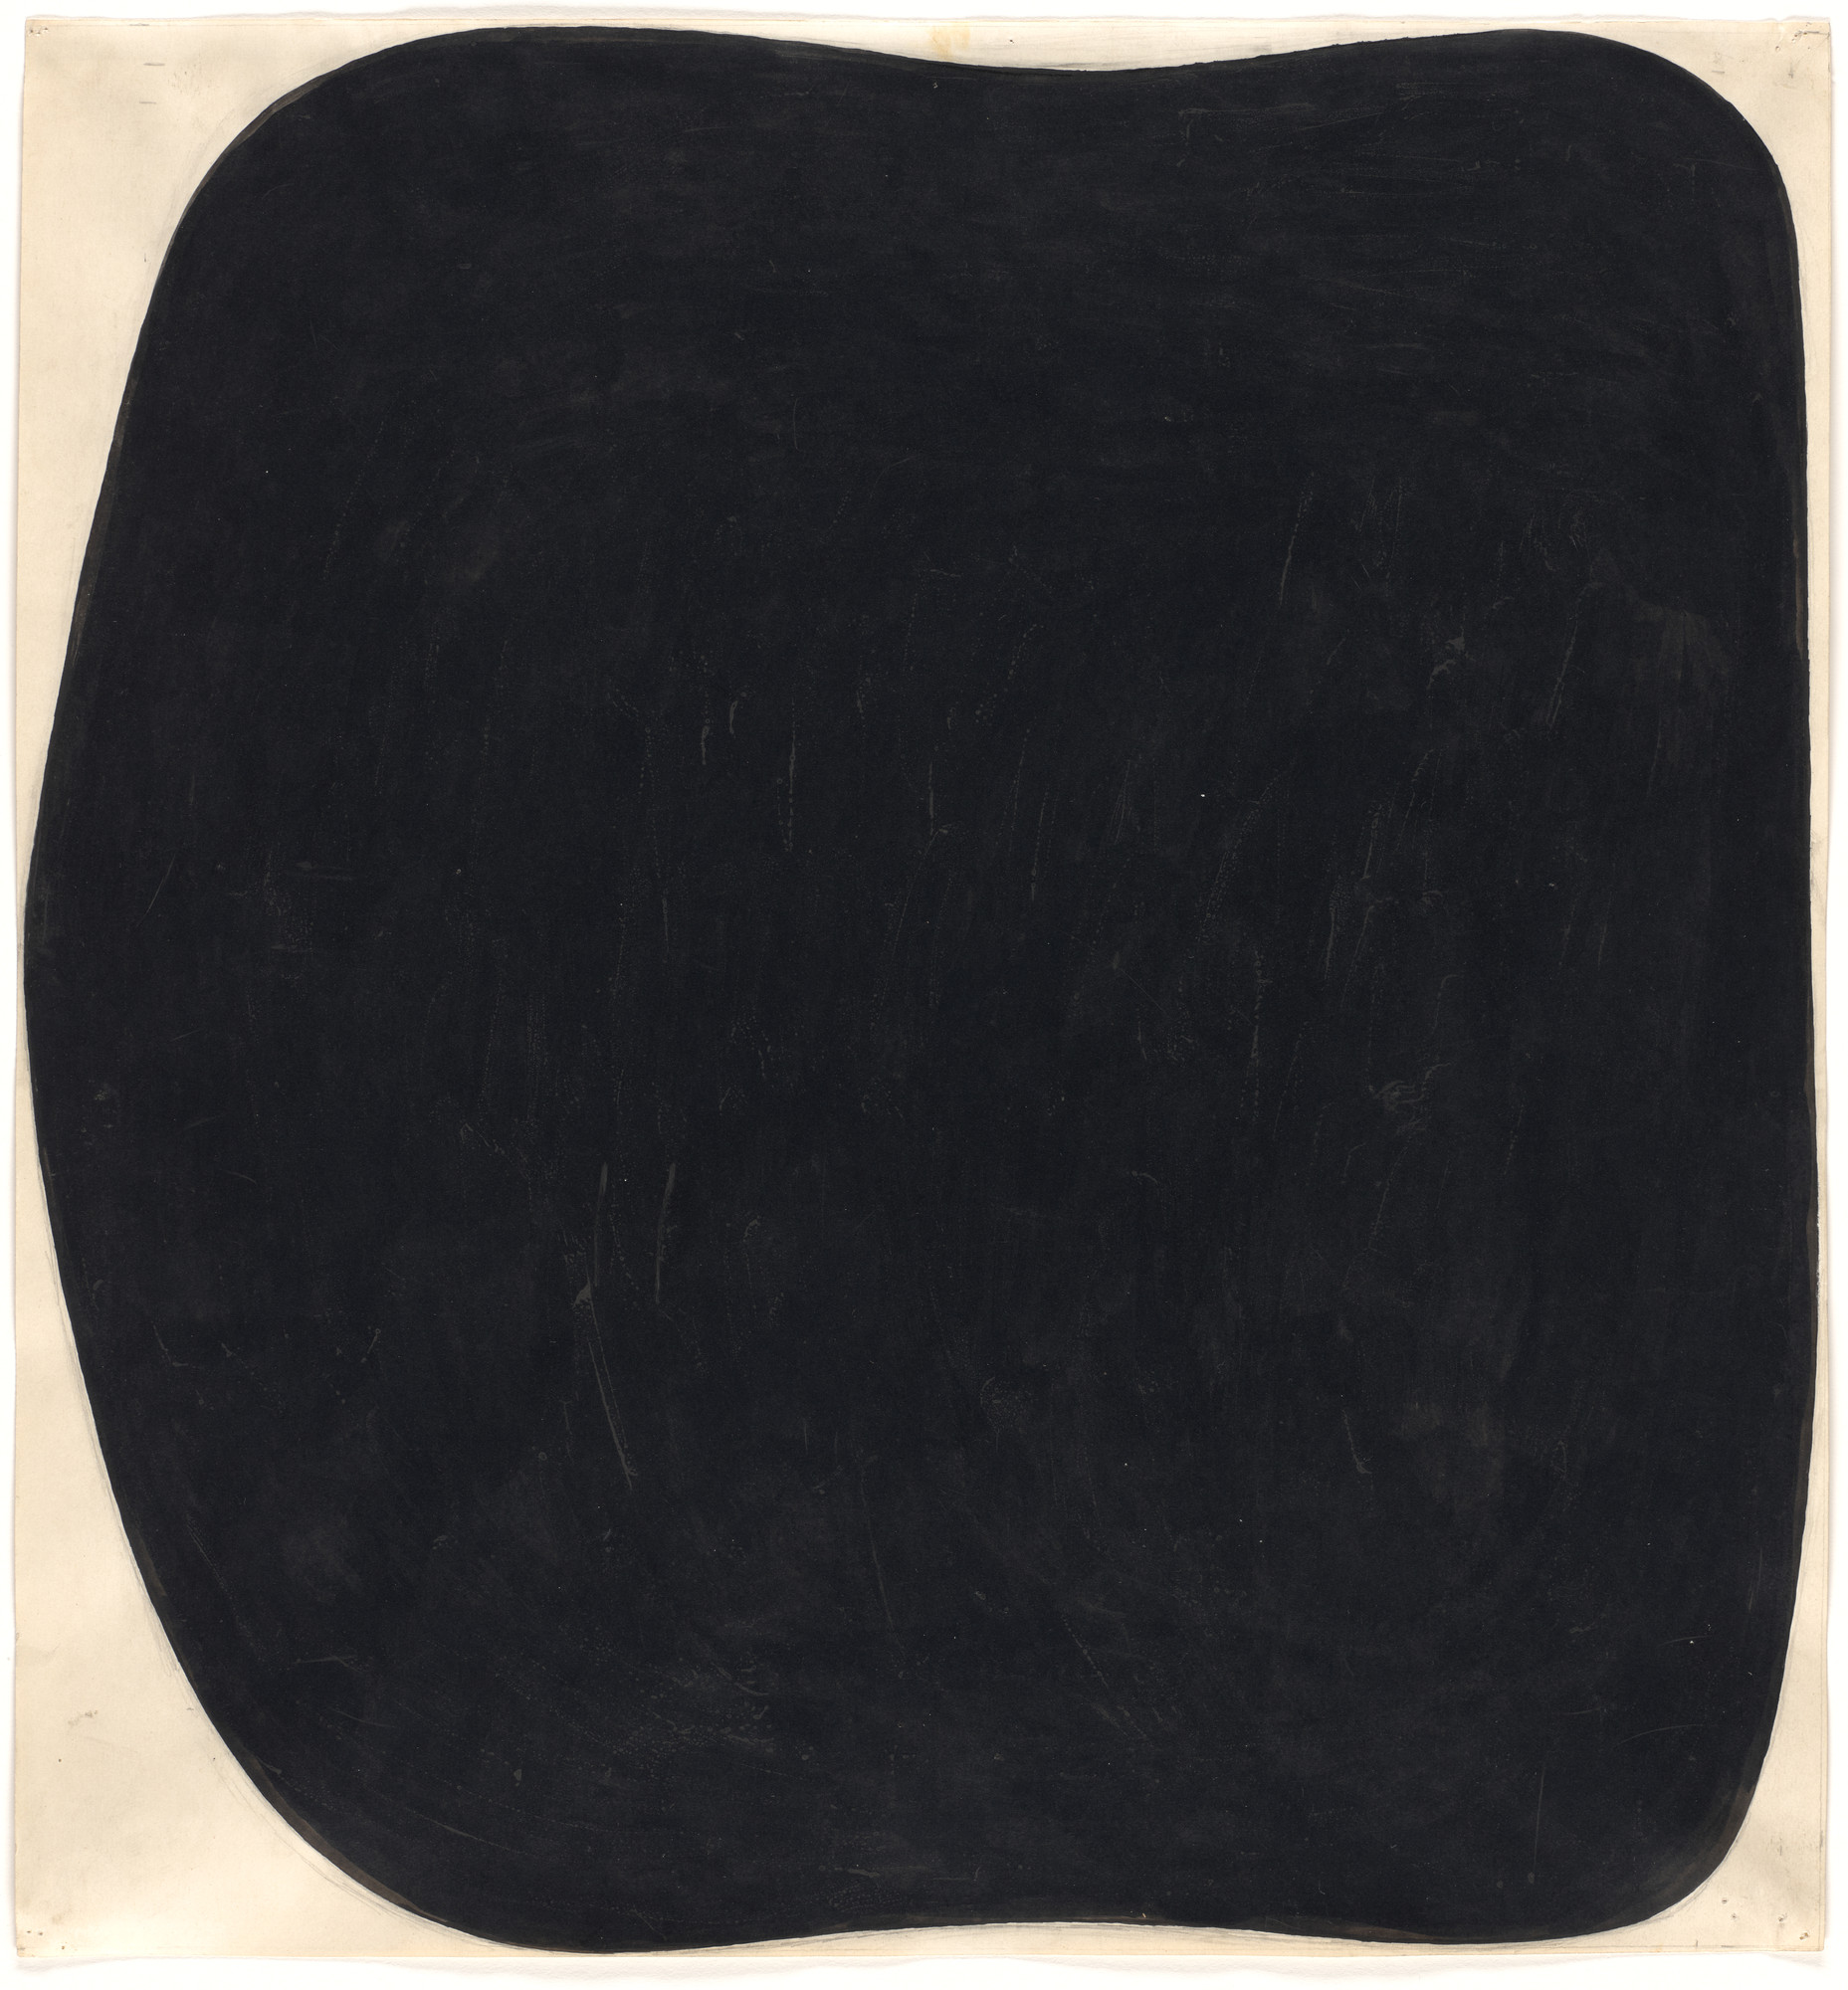 Ellsworth Kelly. Study for Black Ripe. 1954